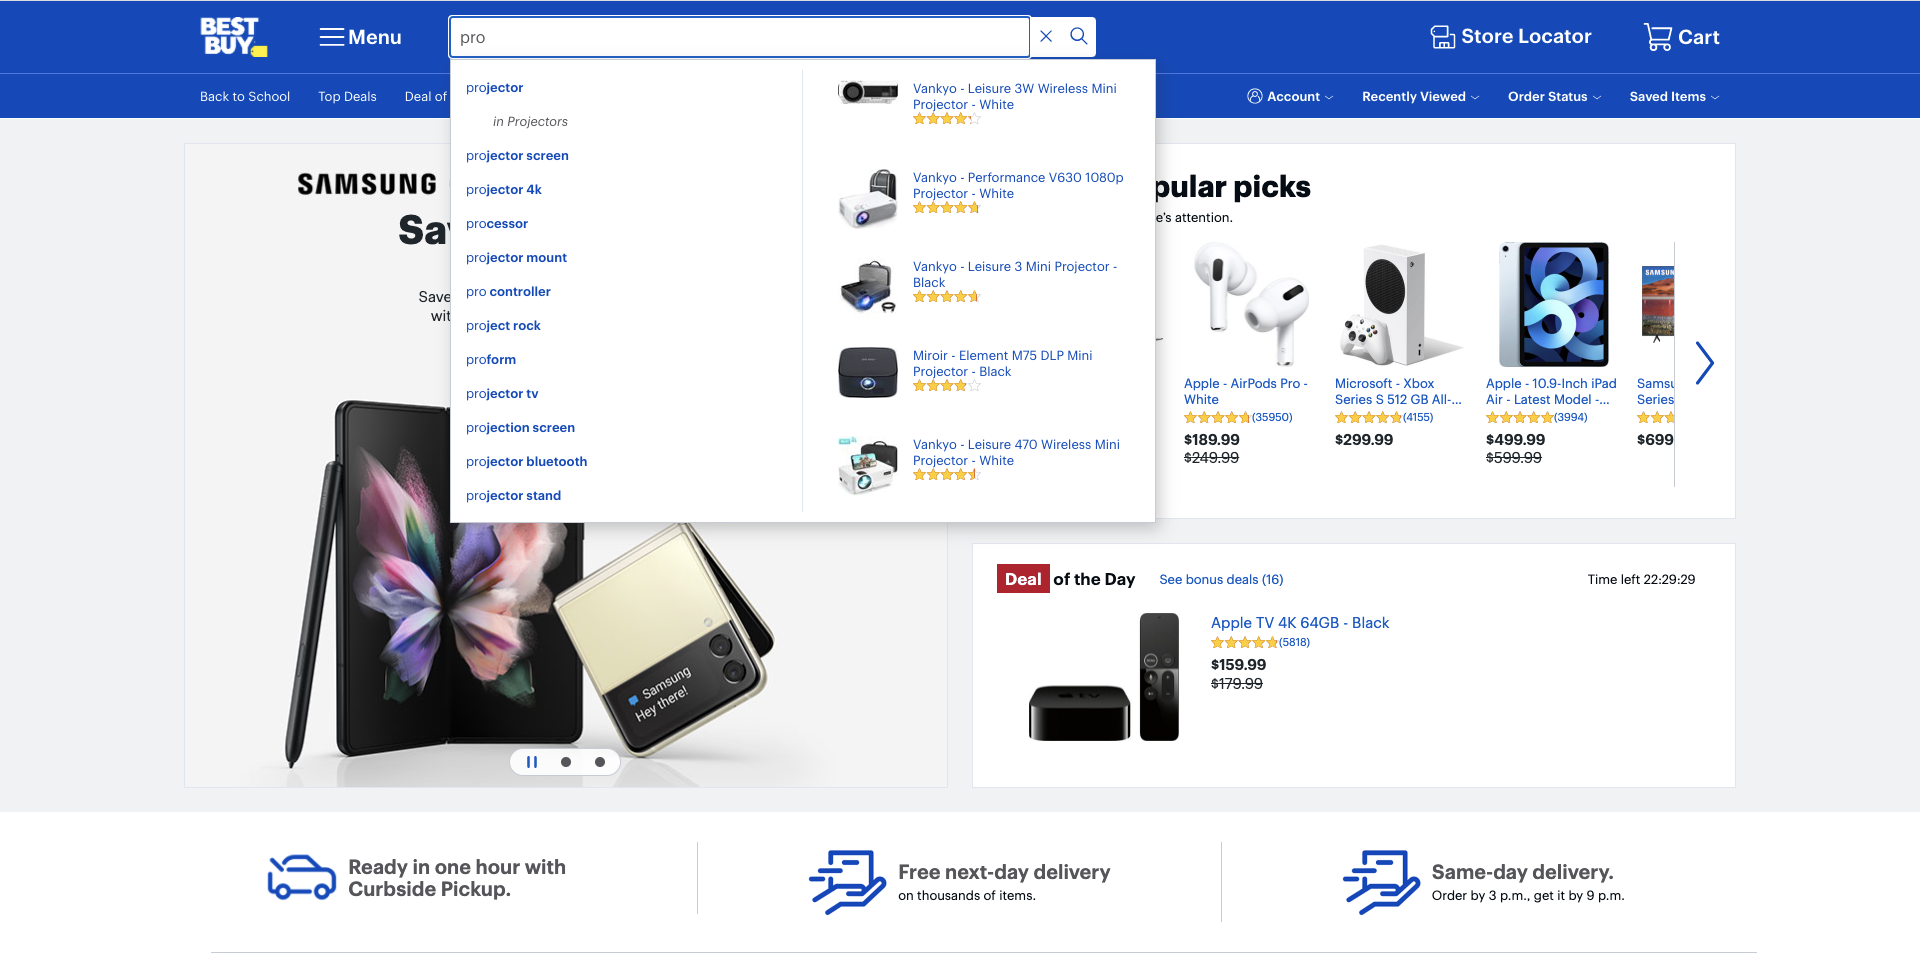 example of using autocomplete in site search by BestBuy